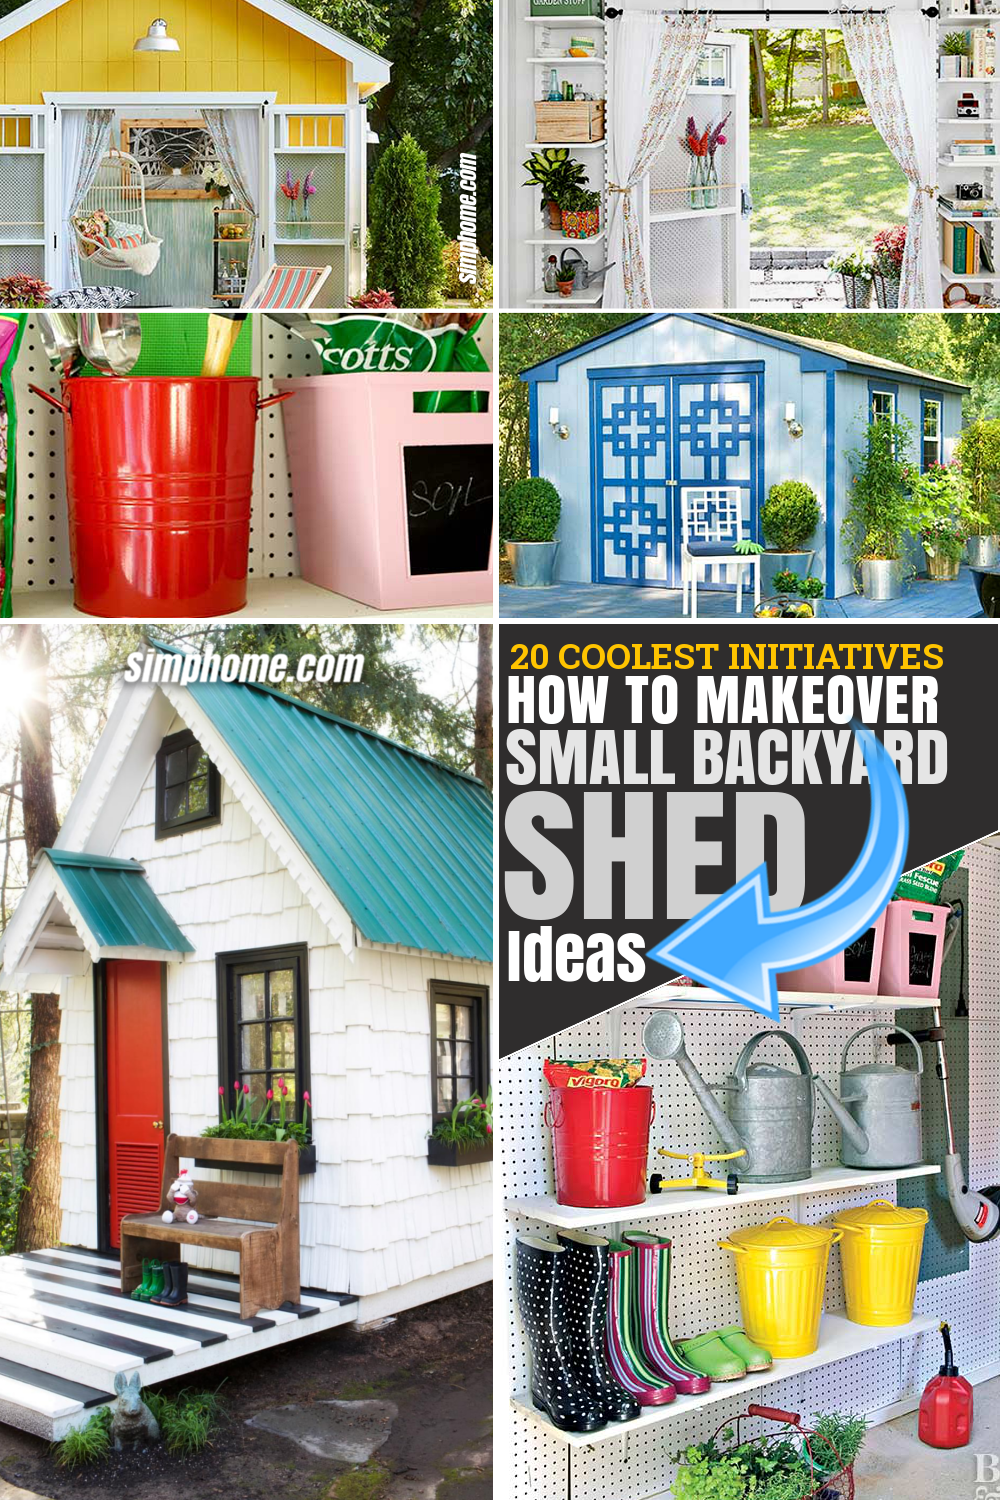 SIMPHOME.COM 10 How to Makeover Small Backyard Shed Ideas Featured Pinterest Image